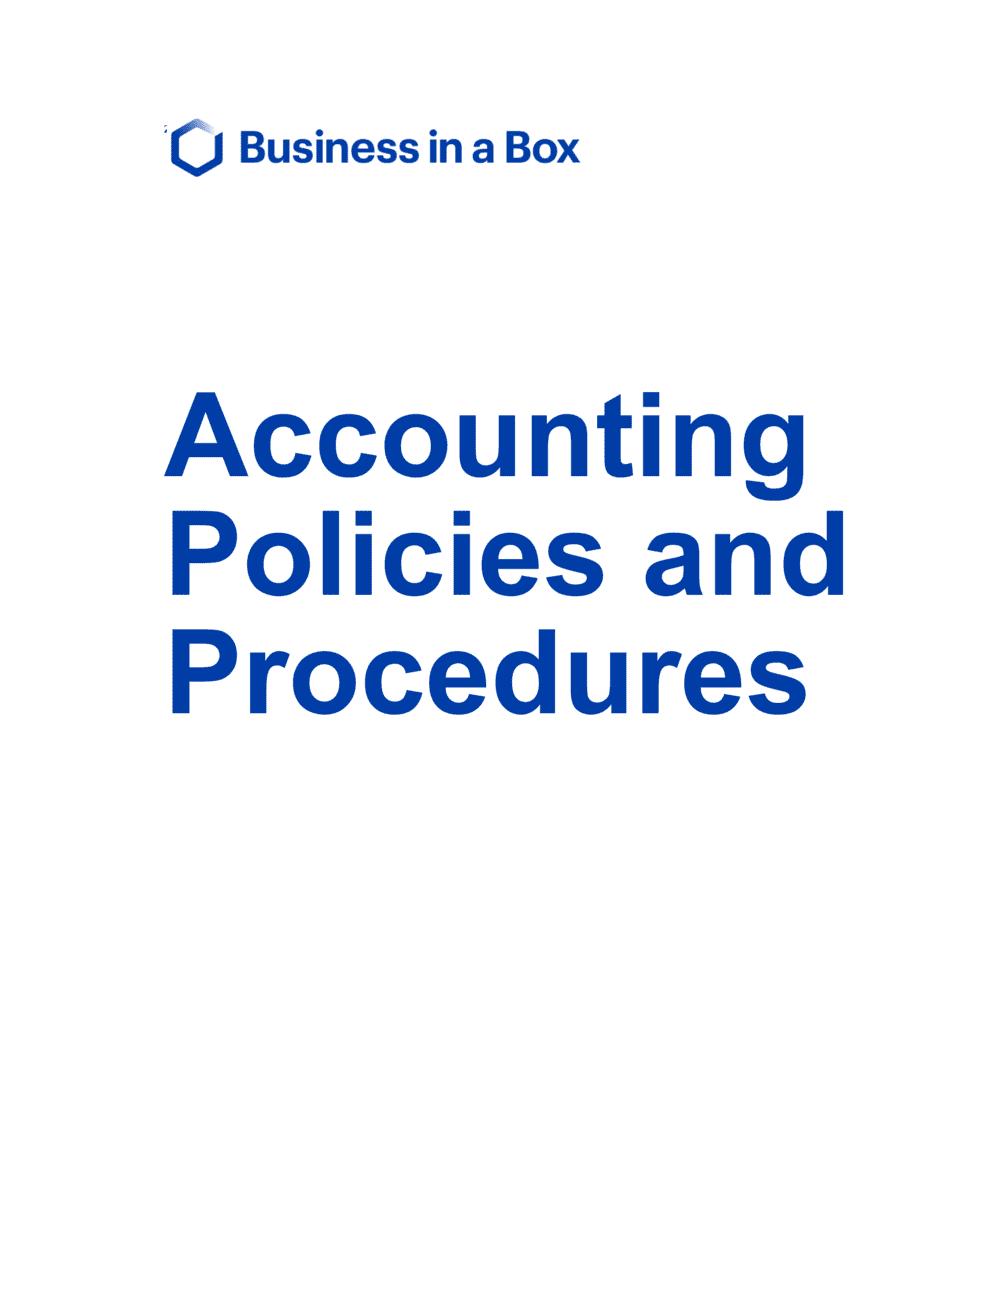 Business-in-a-Box's Accounting Policies And Procedures Template